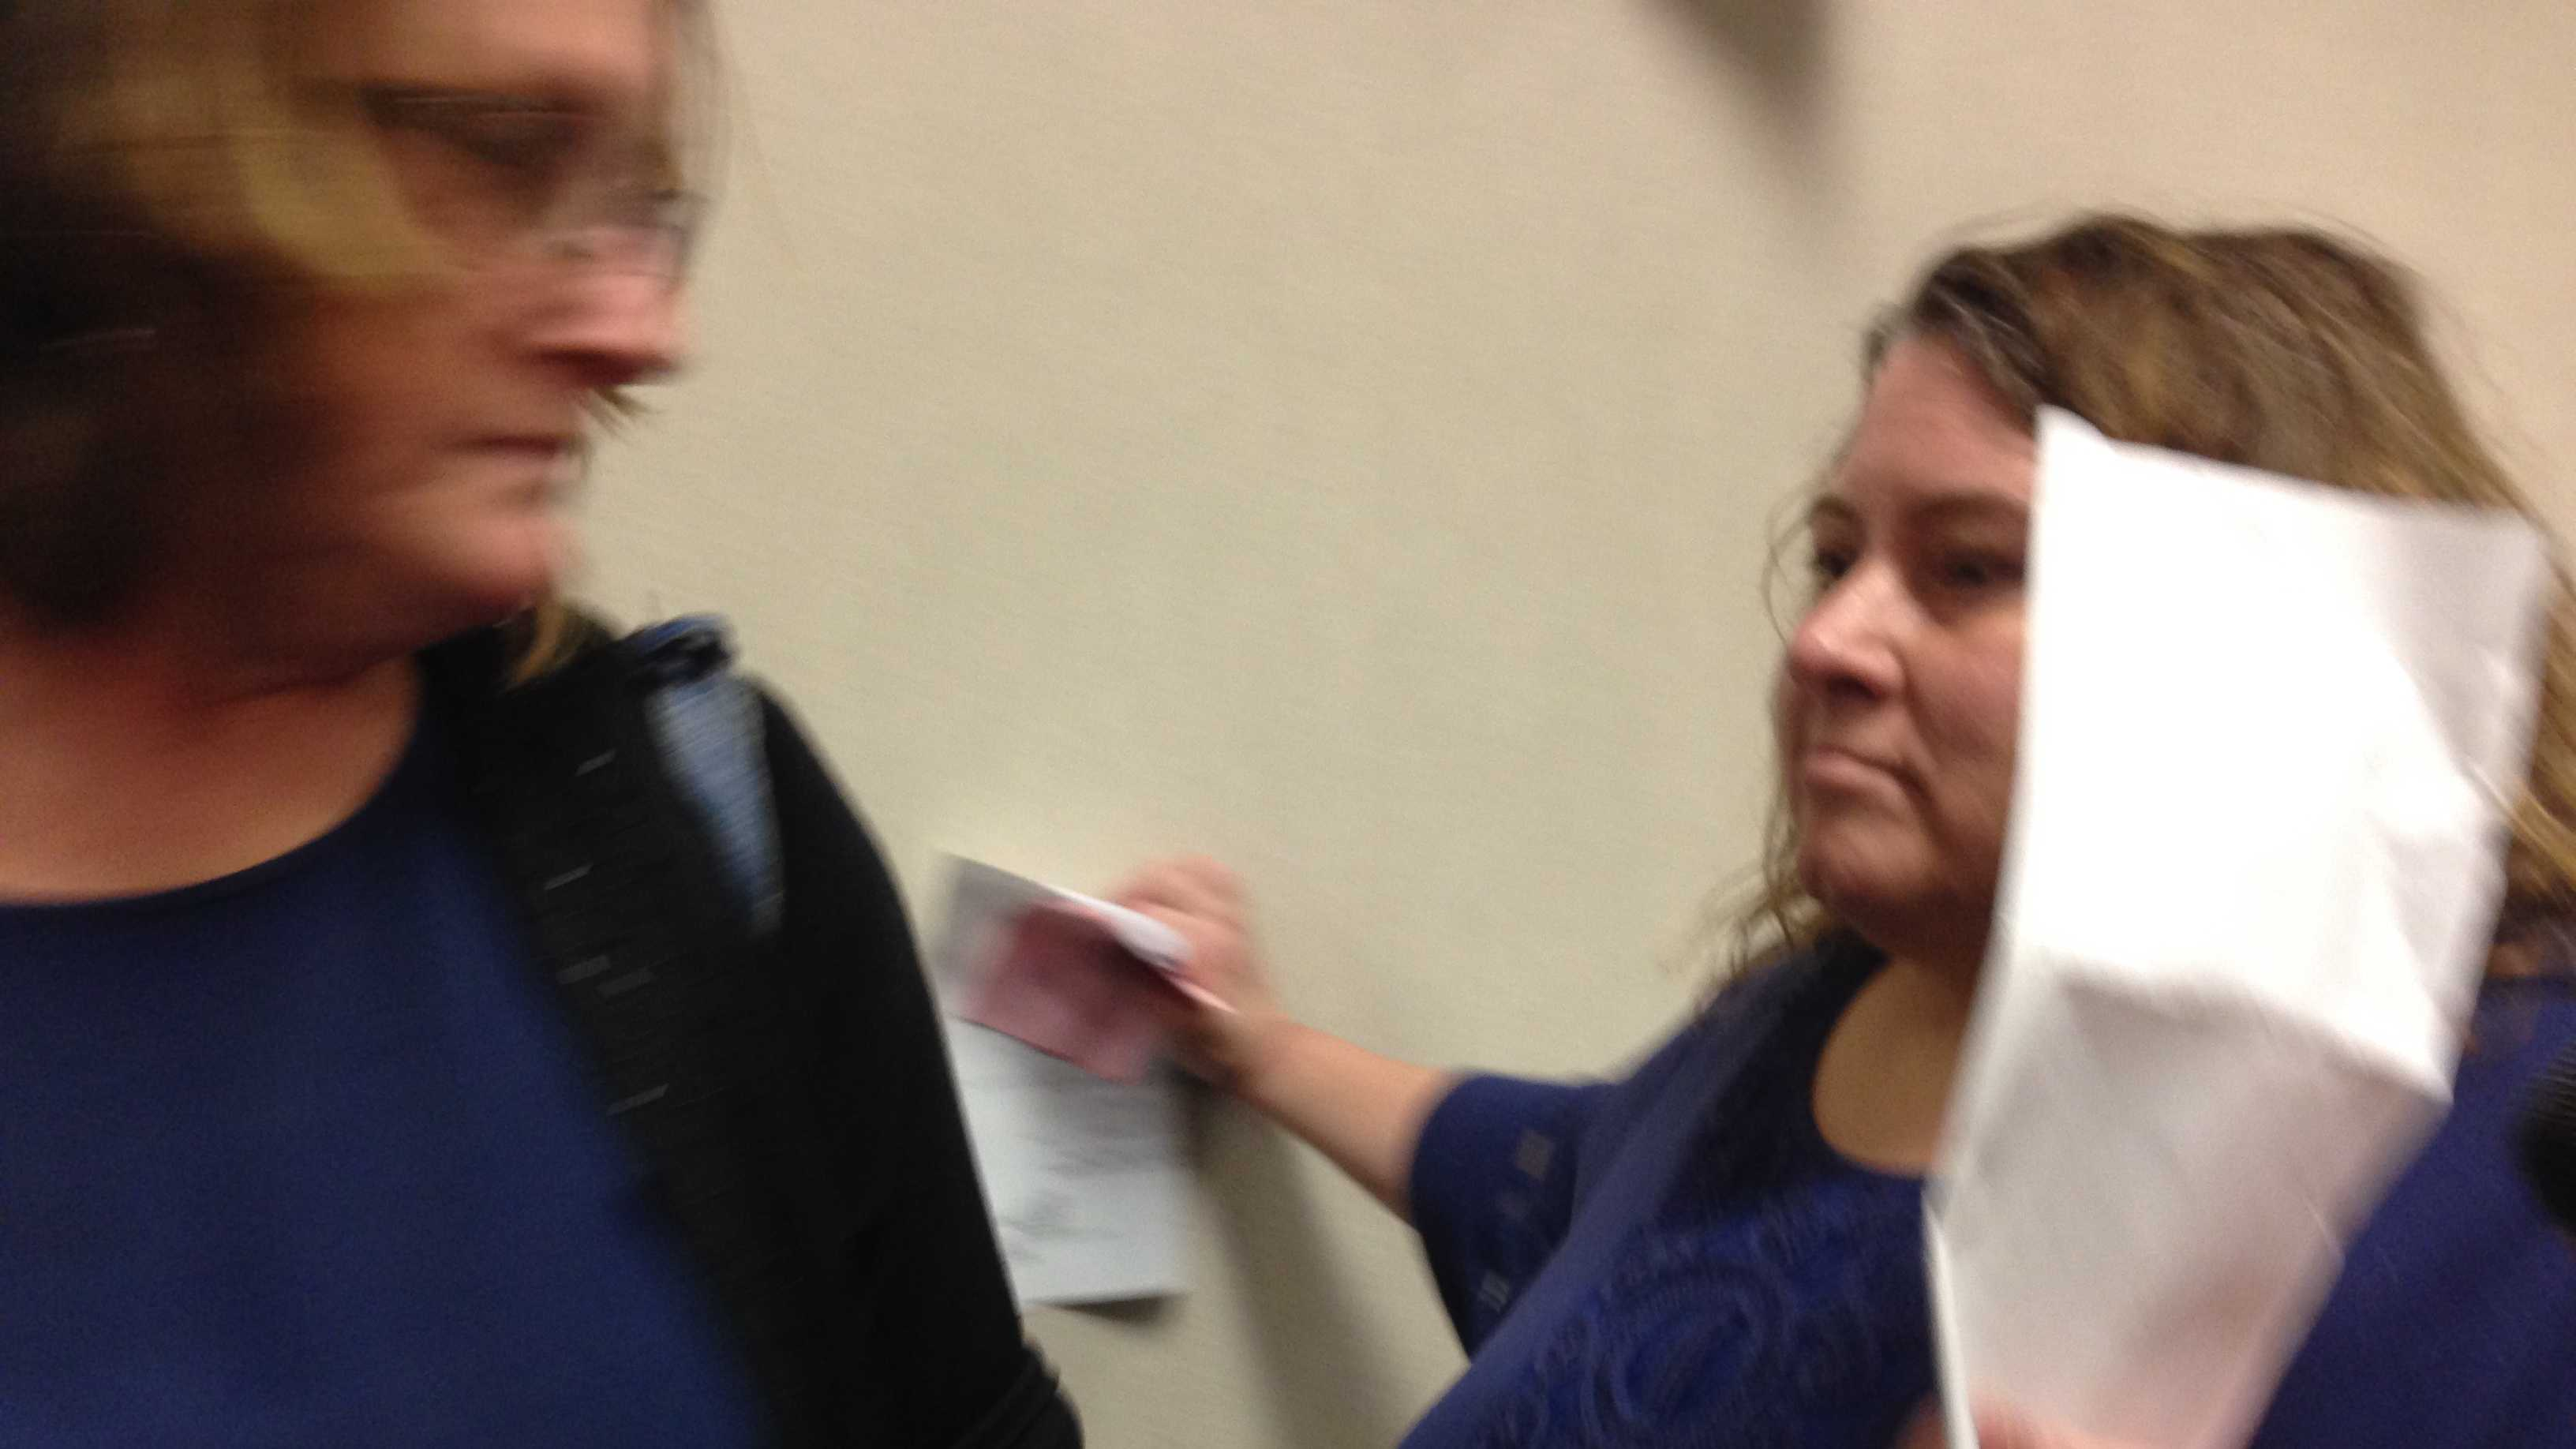 Lisa Peduzzi is seen leaving Chittenden County Court after pleading not guilty to 6 counts of theft of taxpayer money.